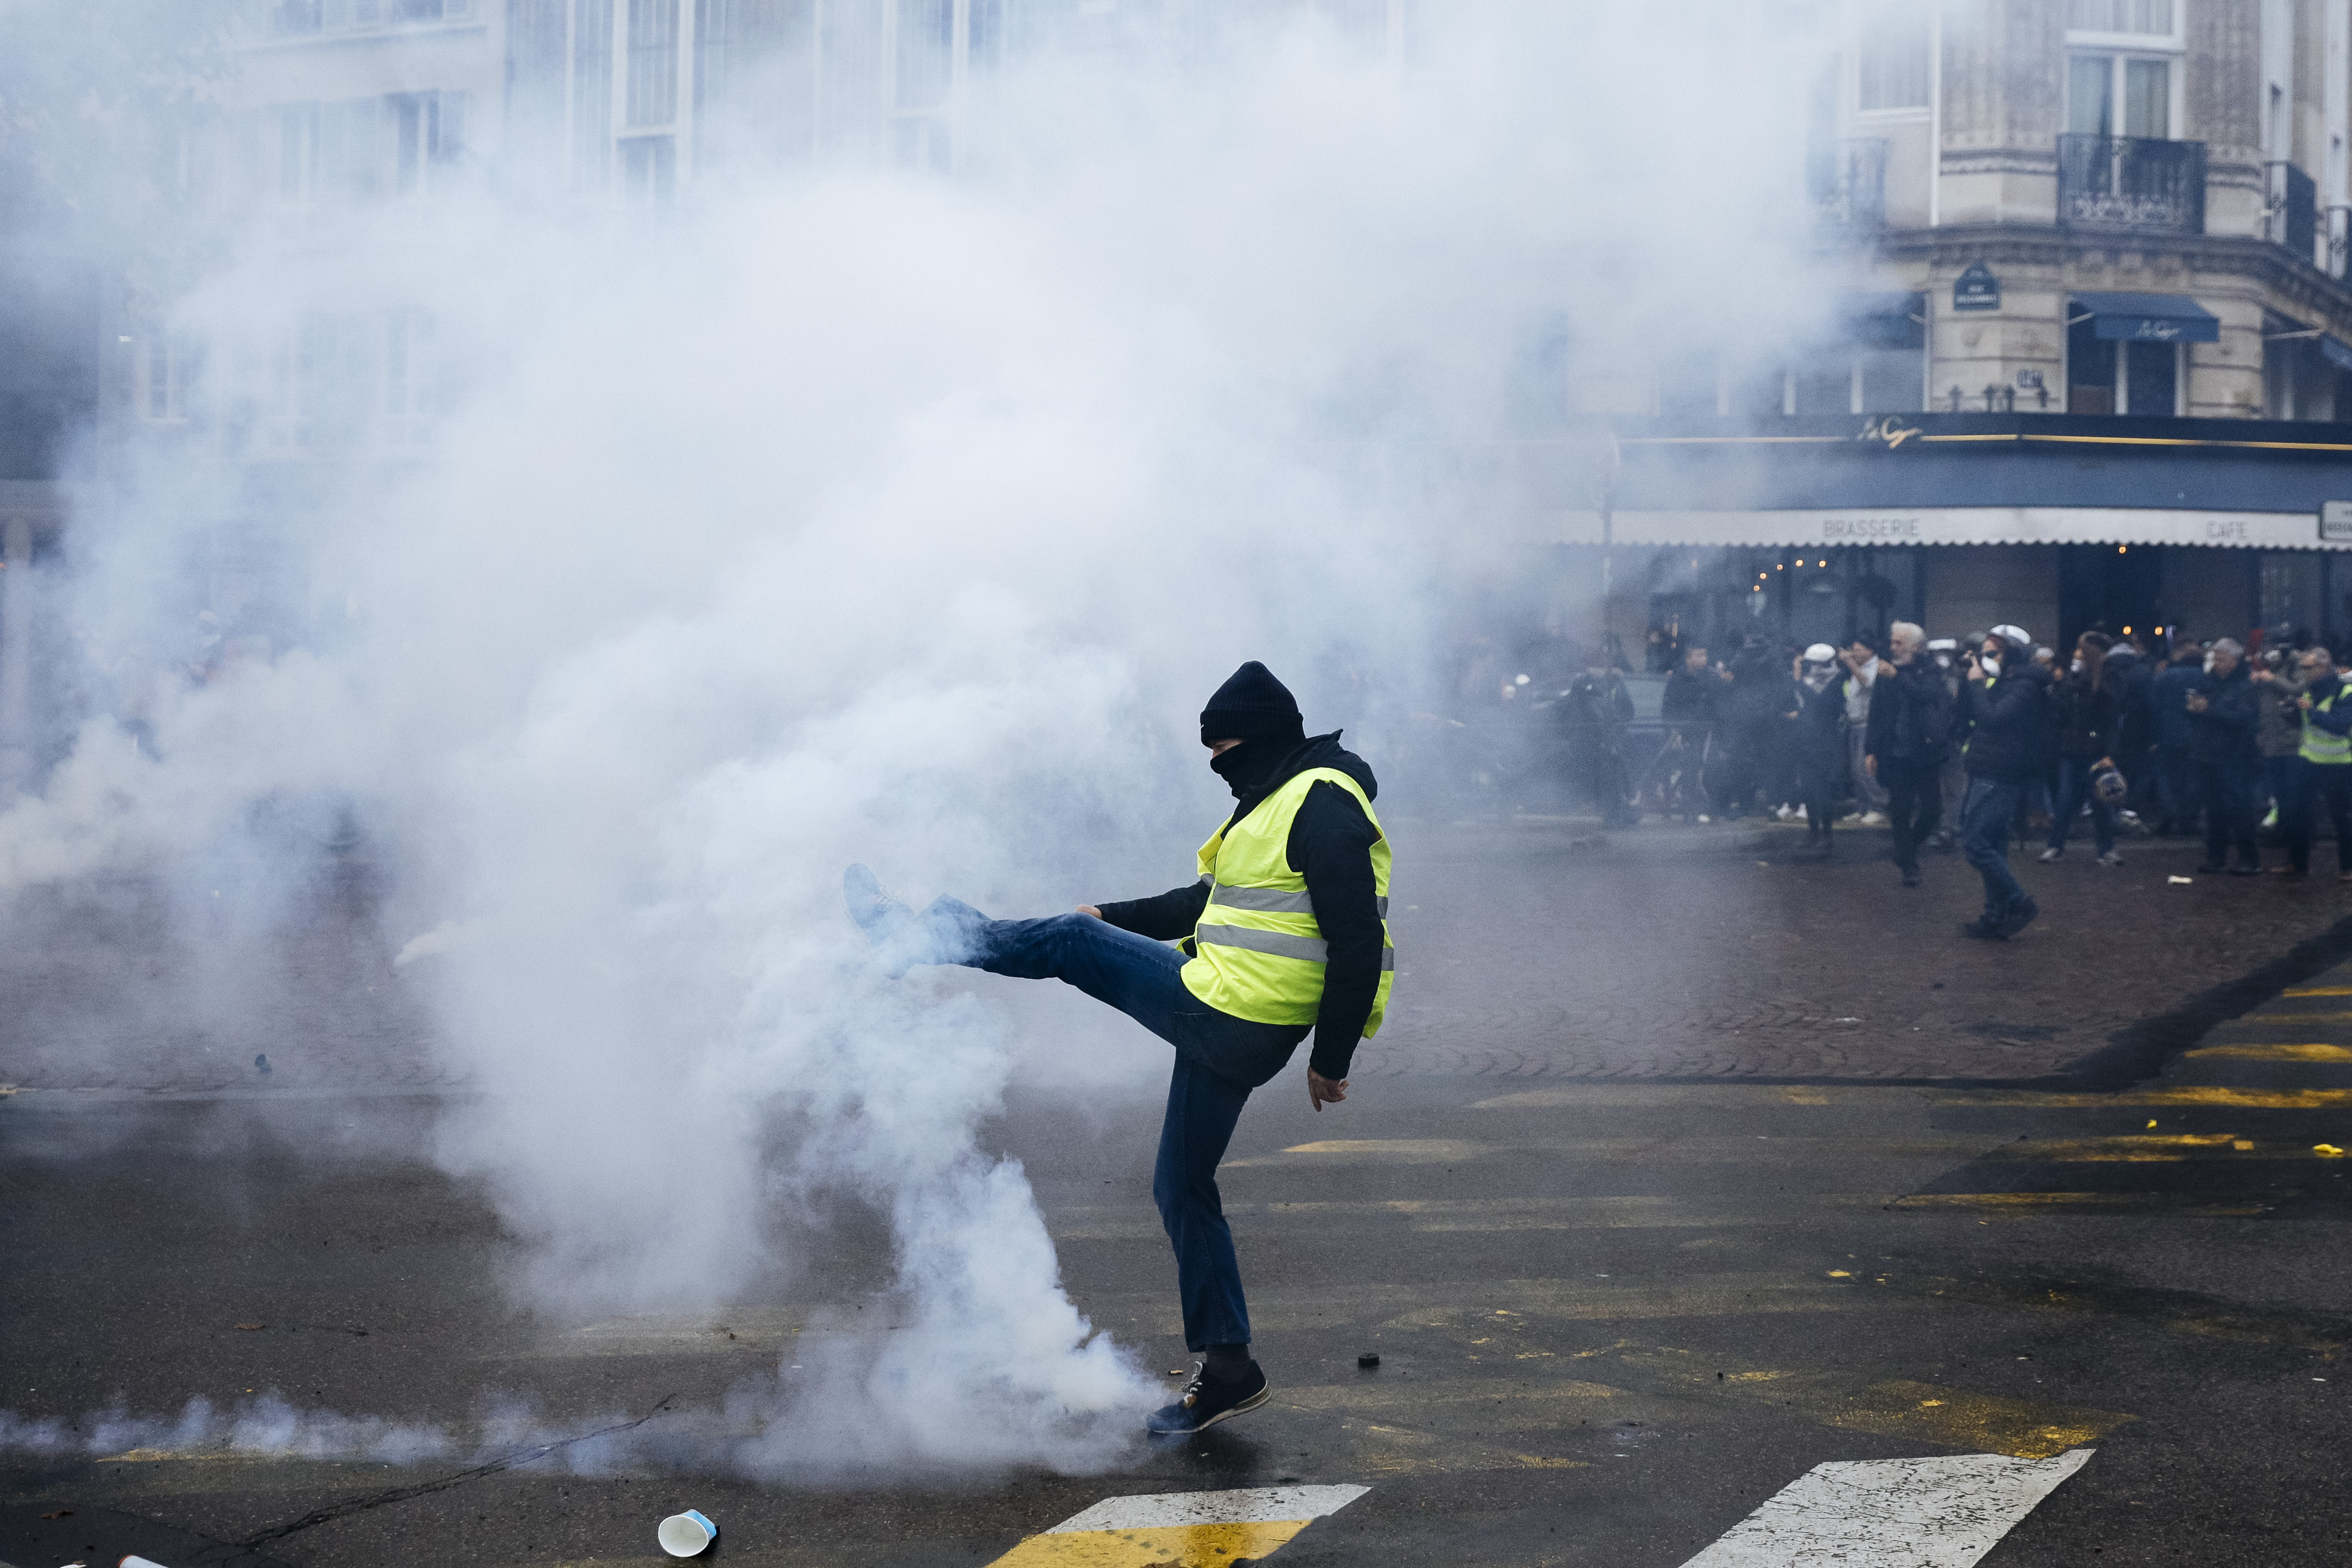 A protestor kicks away a tear gas canister during a yellow vest demonstration marking the first anniversary in Paris, Saturday, Nov. 16, 2019.